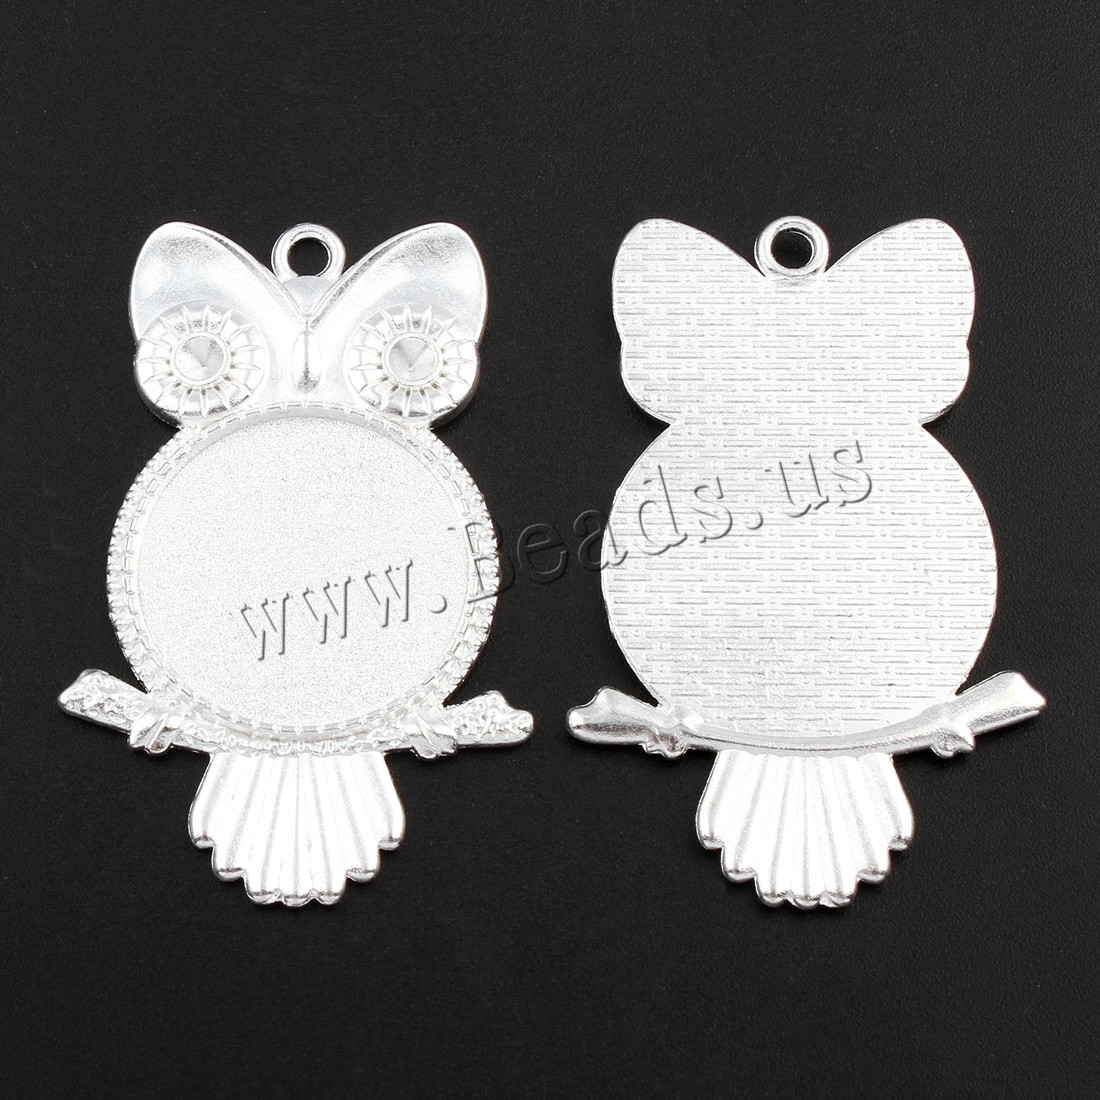 Buy Zinc Alloy Pendant Cabochon Setting Owl silver color plated lead & cadmium free 36x55x2.50mm Hole:Approx 2.5mm Inner Diameter:Approx 25 3mm 10PCs/Bag Sold Bag